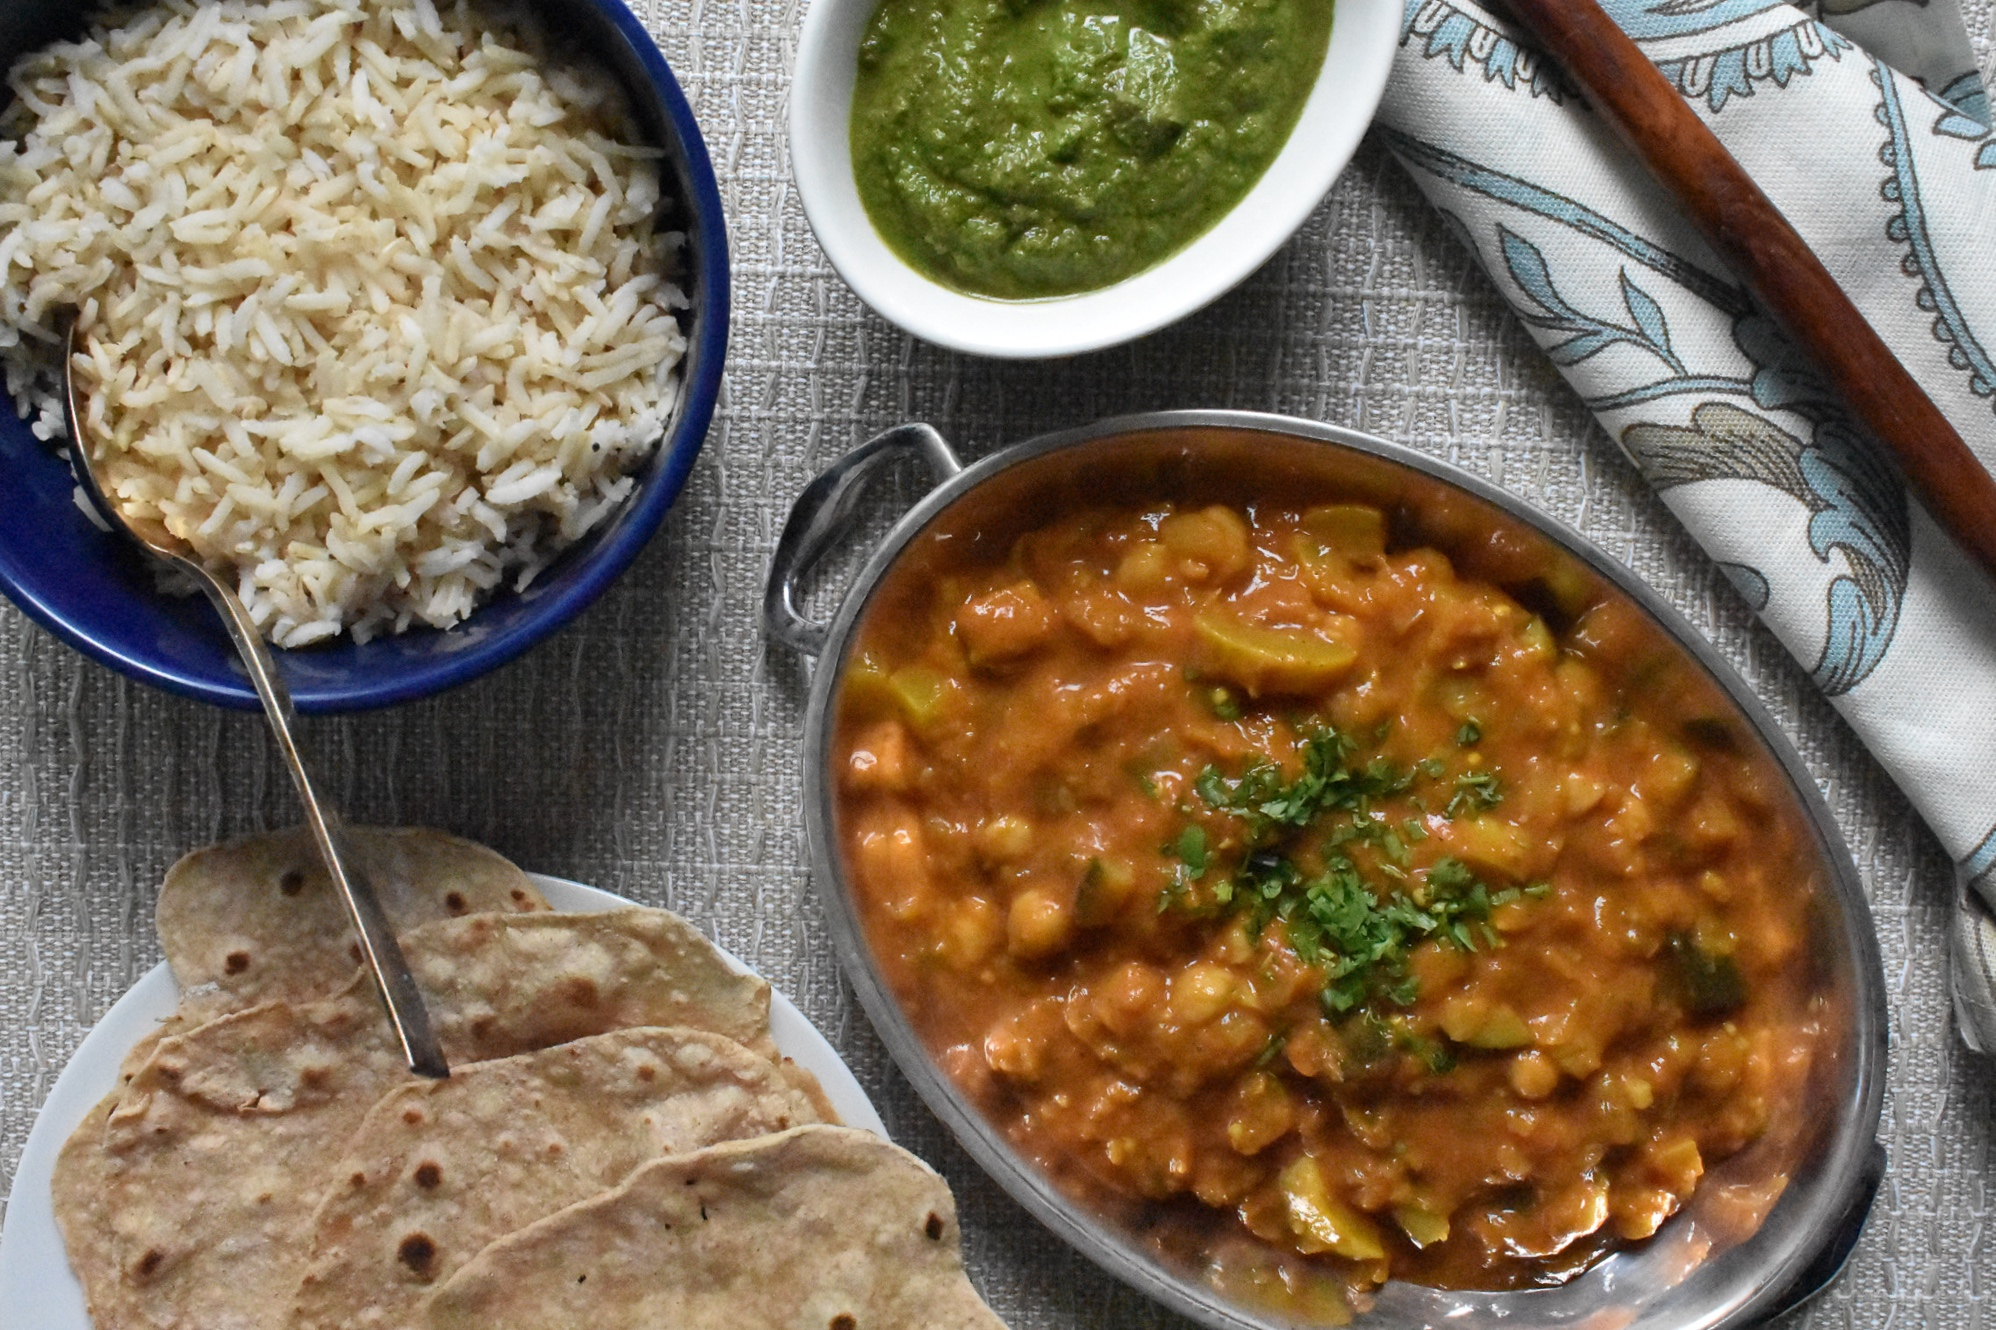 Summer Squash and Chickpea Curry